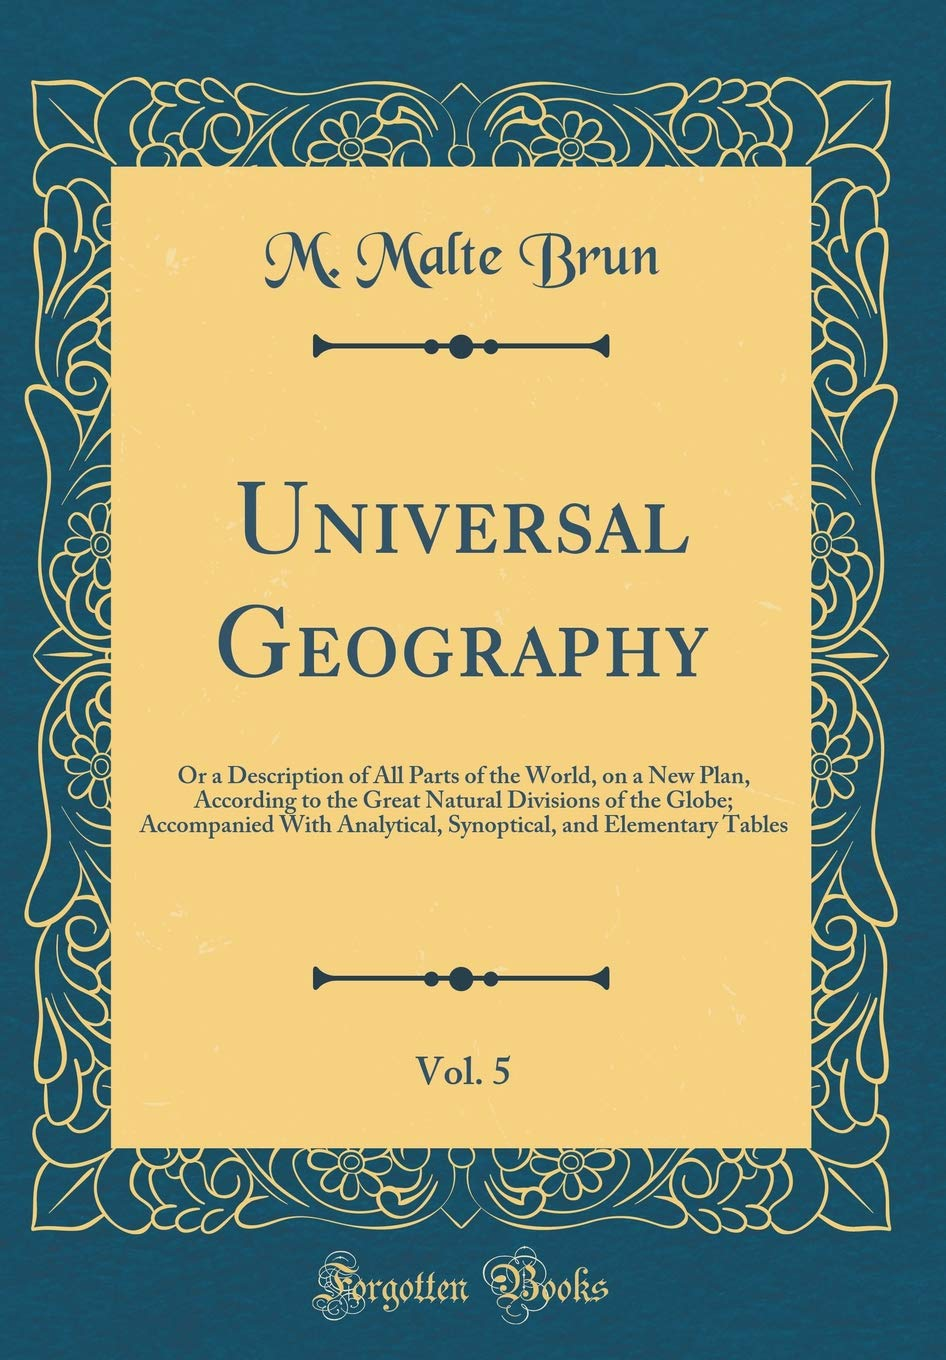 Universal Geography, Vol. 5: Or a Description of All Parts of the World, on a New Plan, According to the Great Natural Divisions of the Globe; ... and Elementary Tables (Classic Reprint) pdf